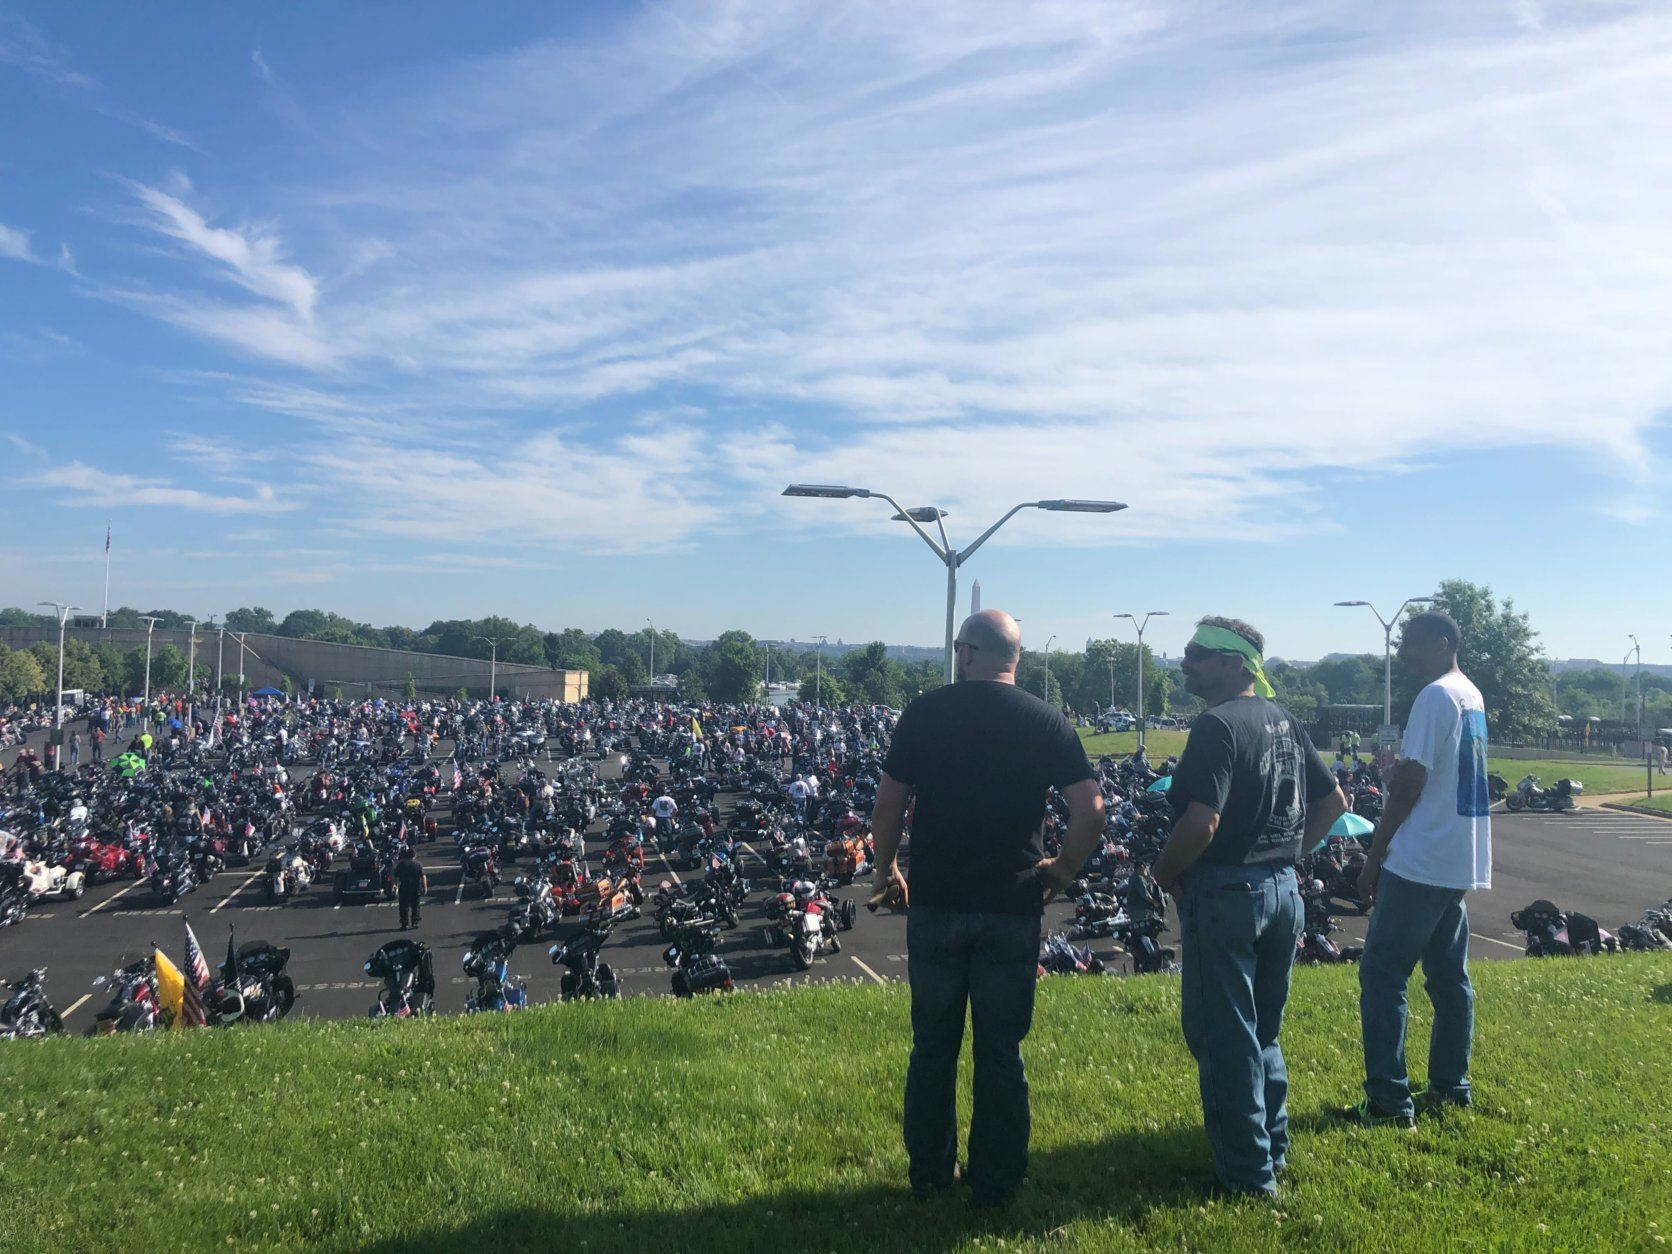 It's the final time Rolling Thunder will ride through Washington, D.C. (WTOP/Melissa Howell)